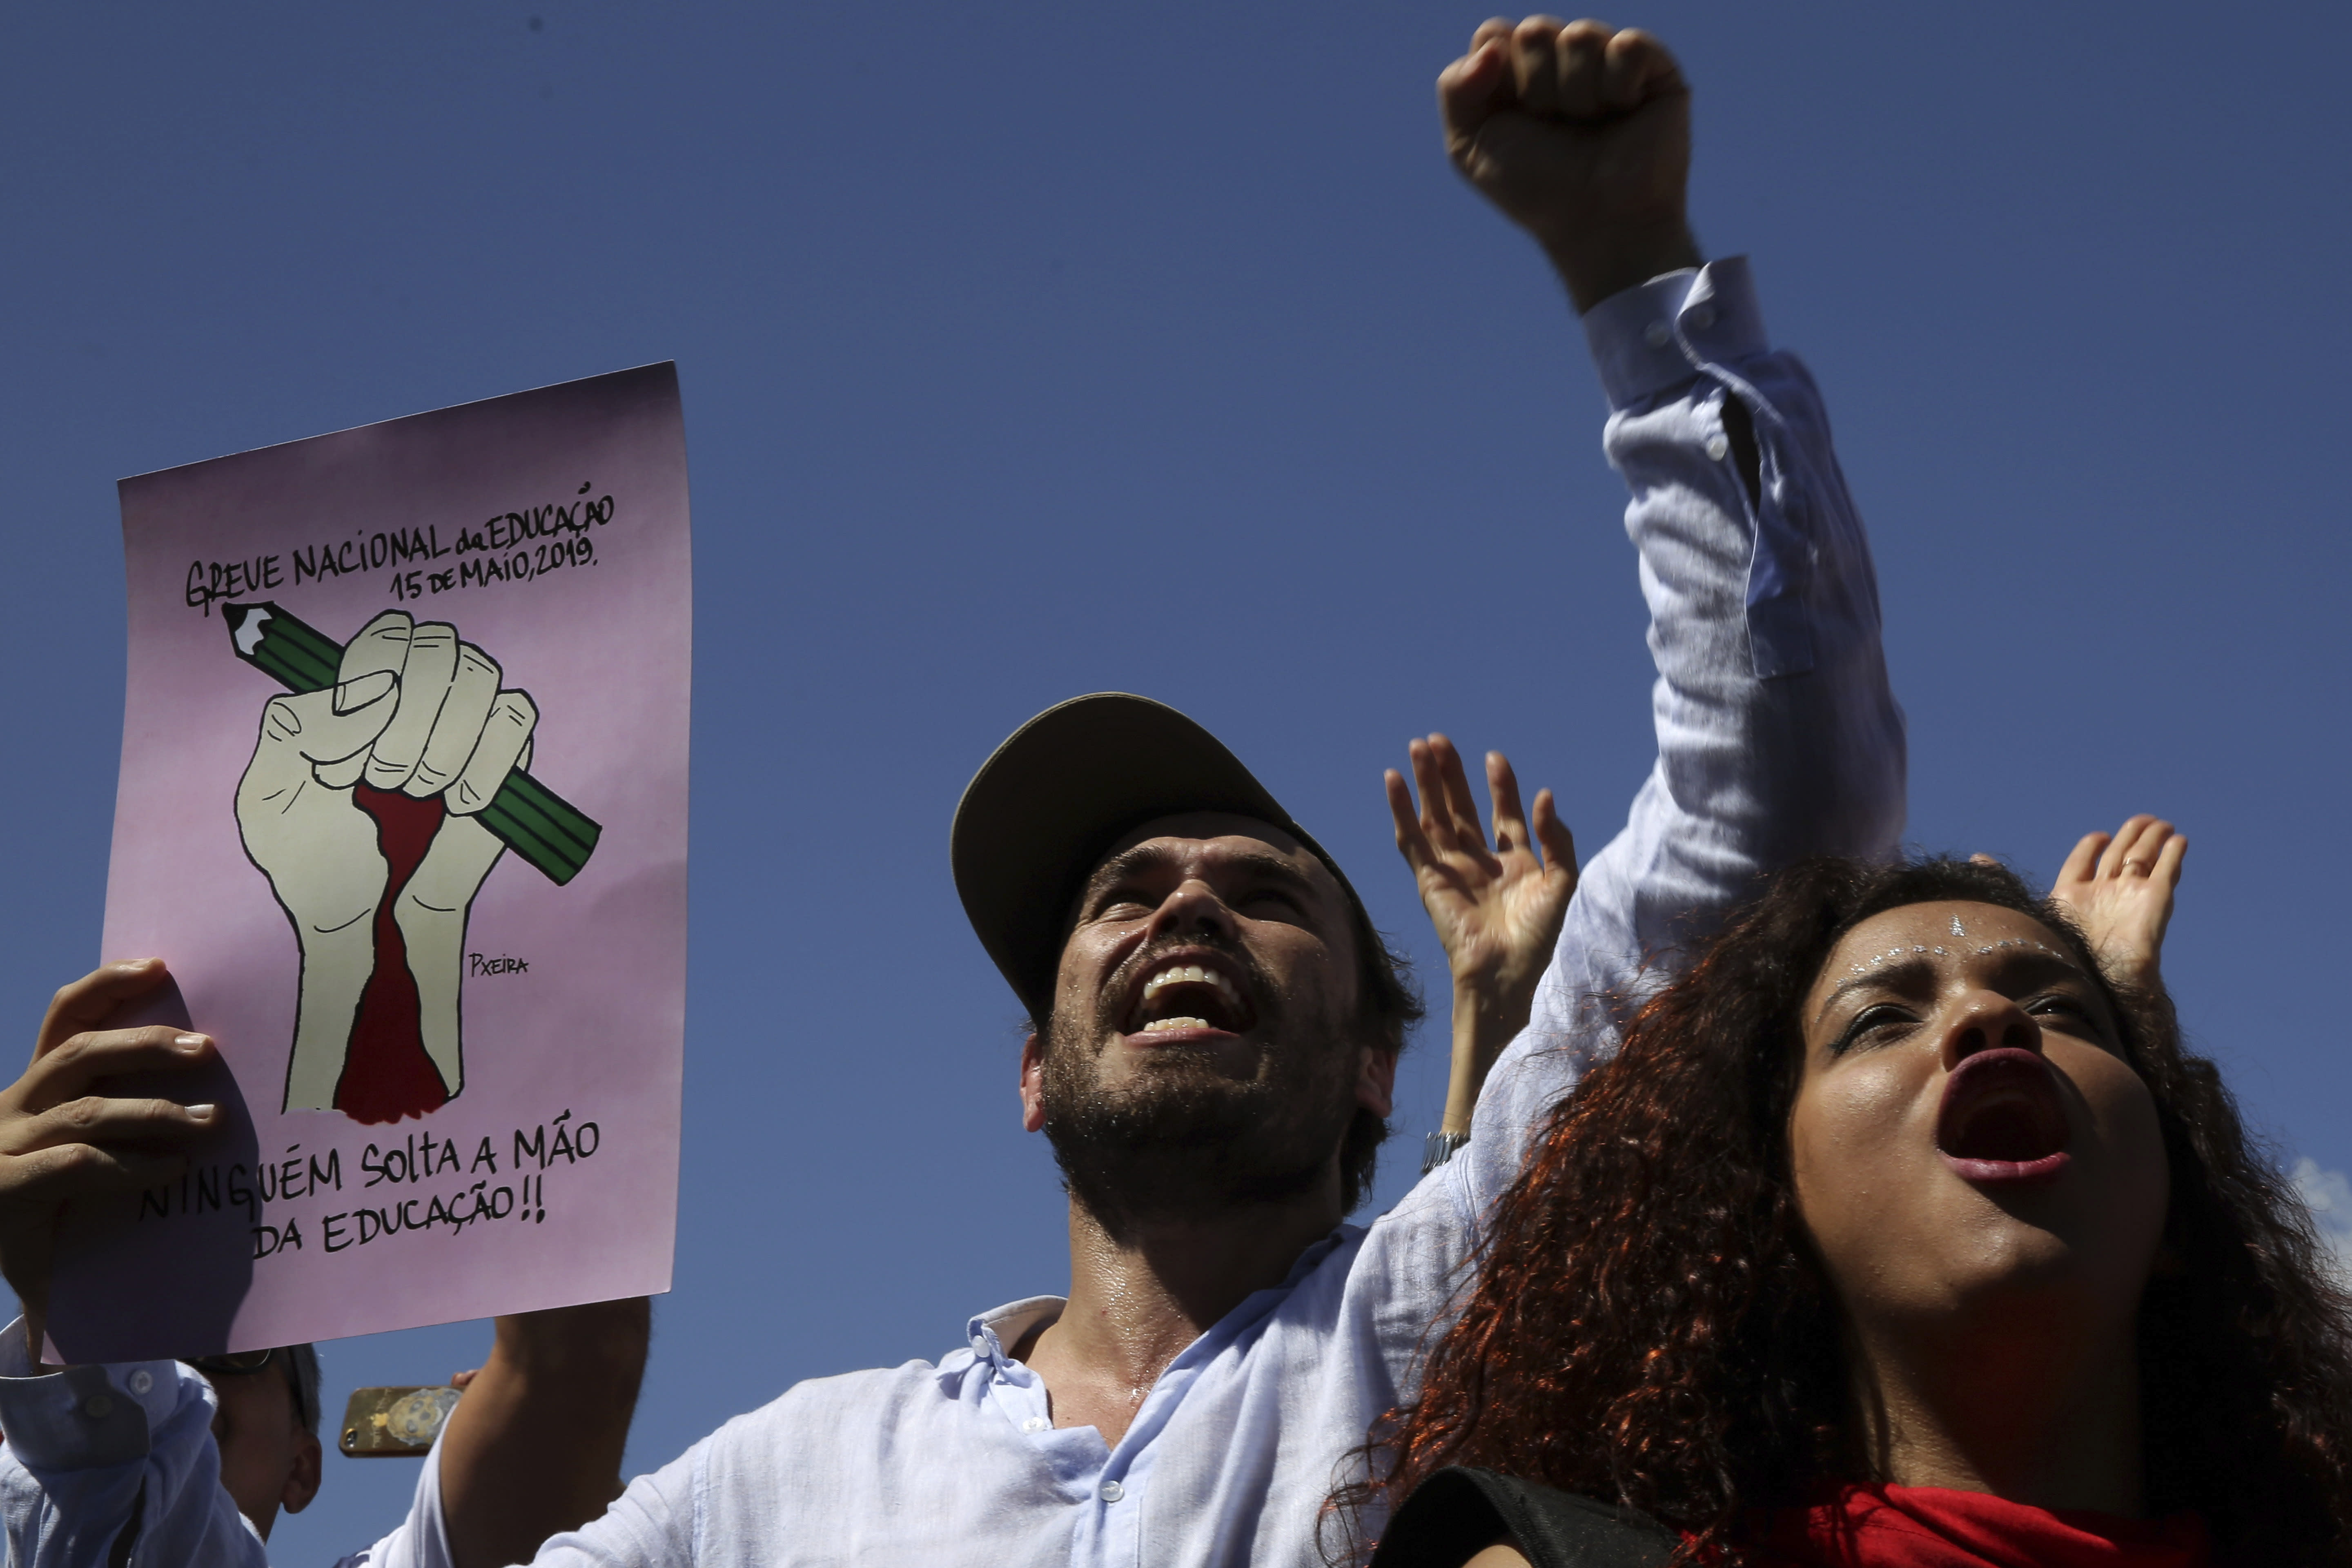 Crowds protest against education cuts in Brazil